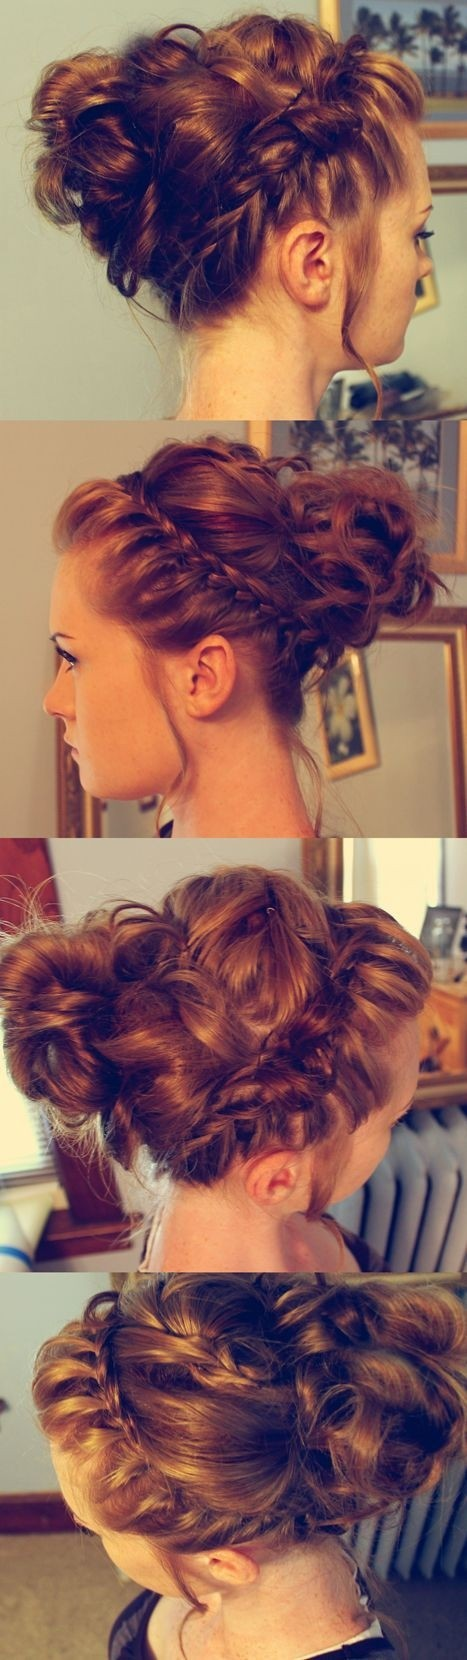 Crown Braid updo for prom hairstyles